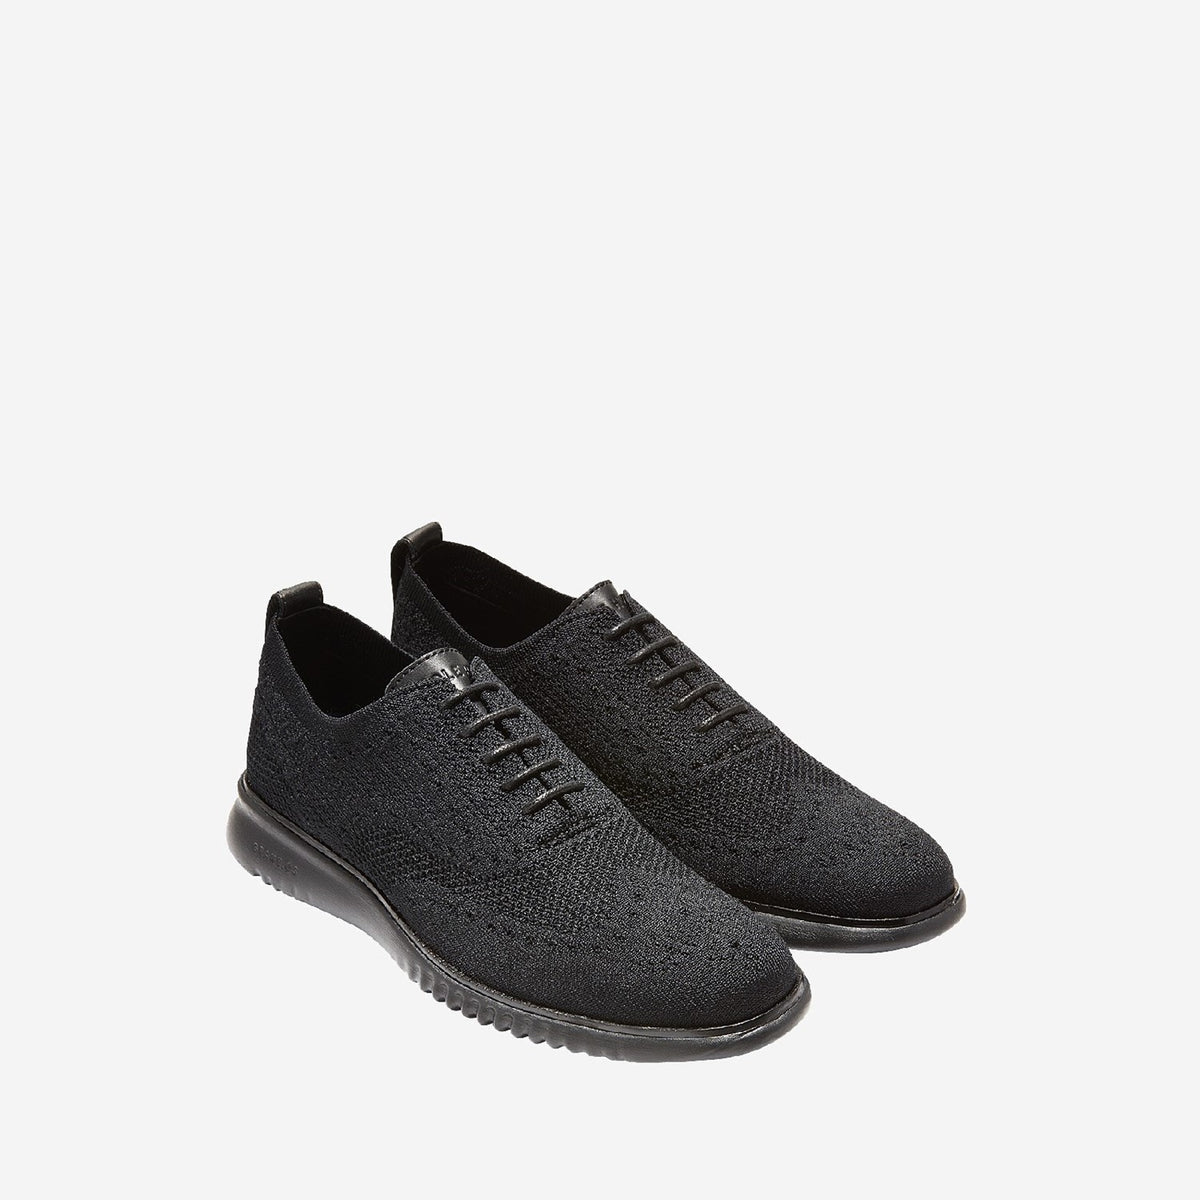 Men's 2.ZERØGRAND Stitchlite Oxford Black/Black